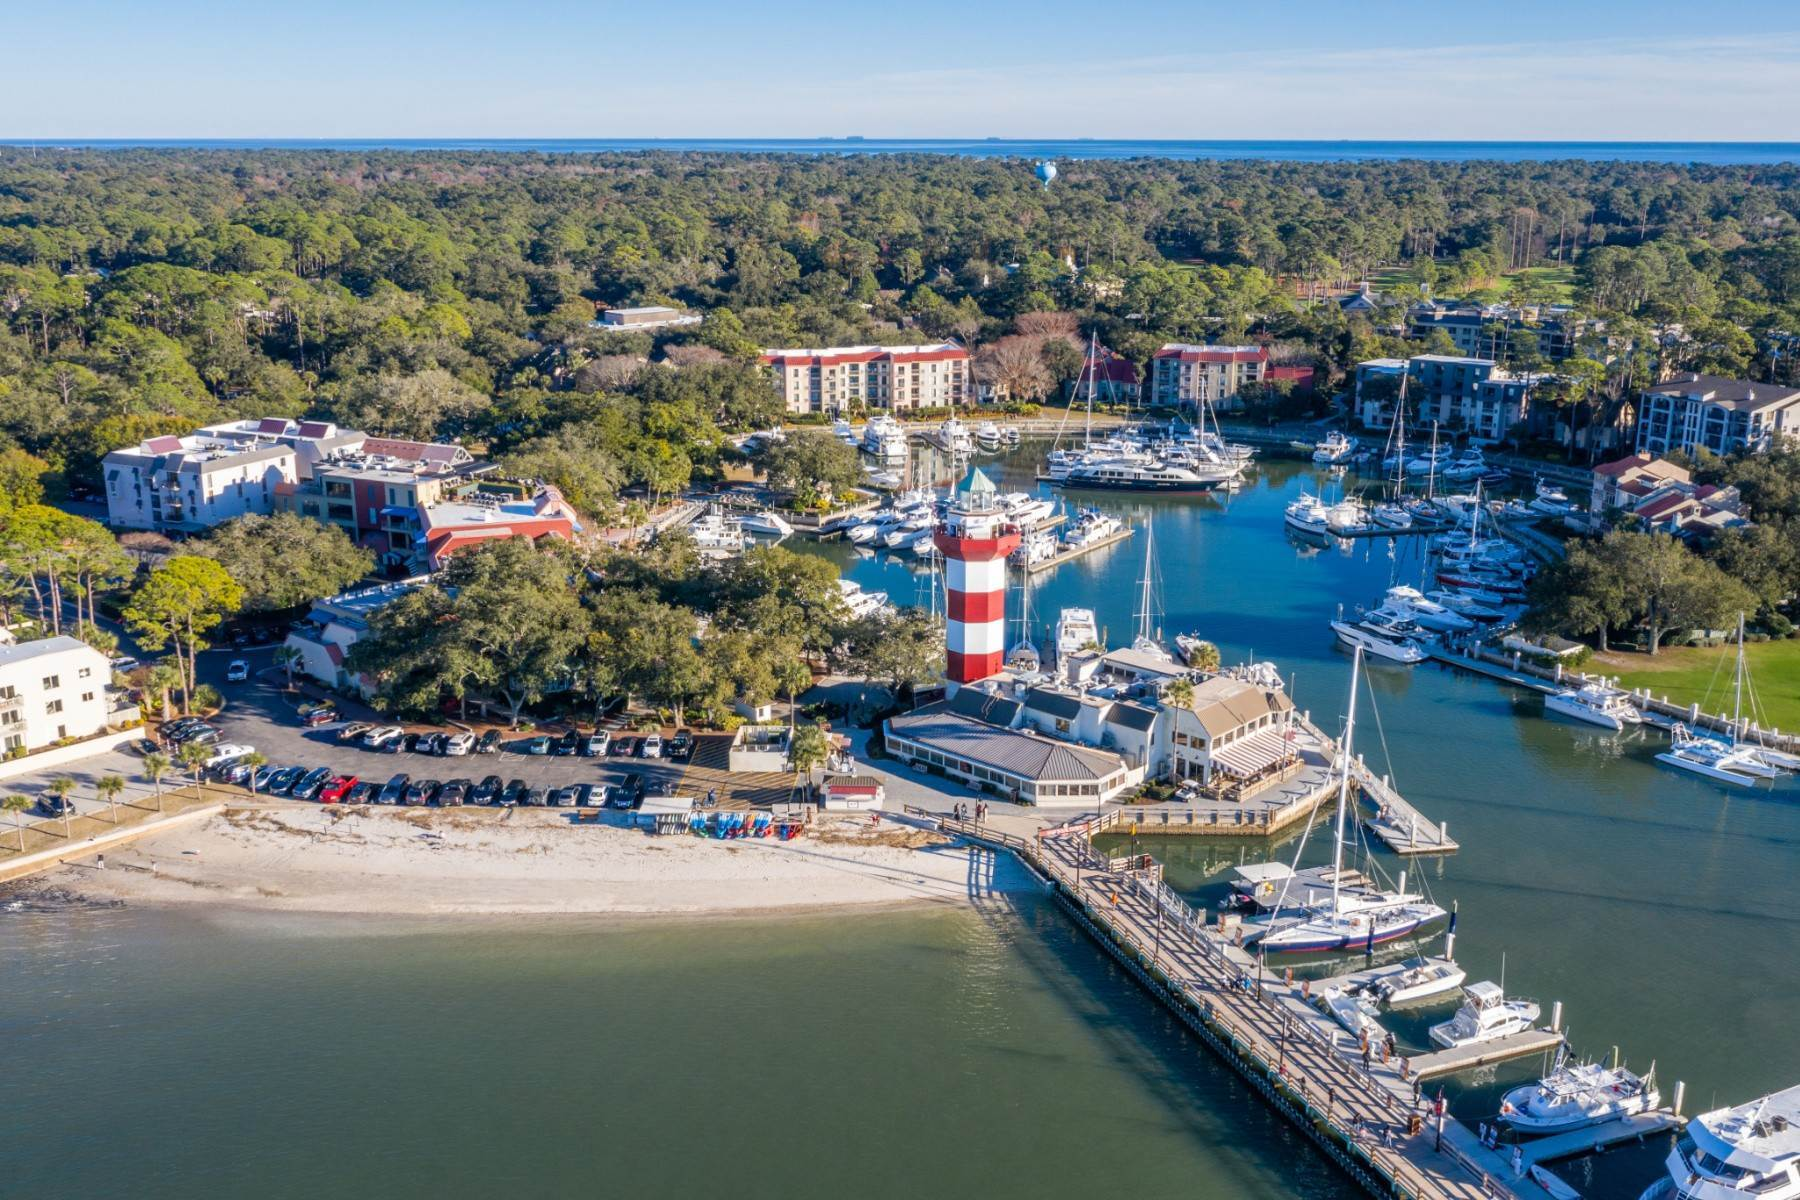 4. Property for Sale at Harbour Town Boat Slip 26 Harbour Town Yacht Basin Hilton Head Island, South Carolina 29928 United States